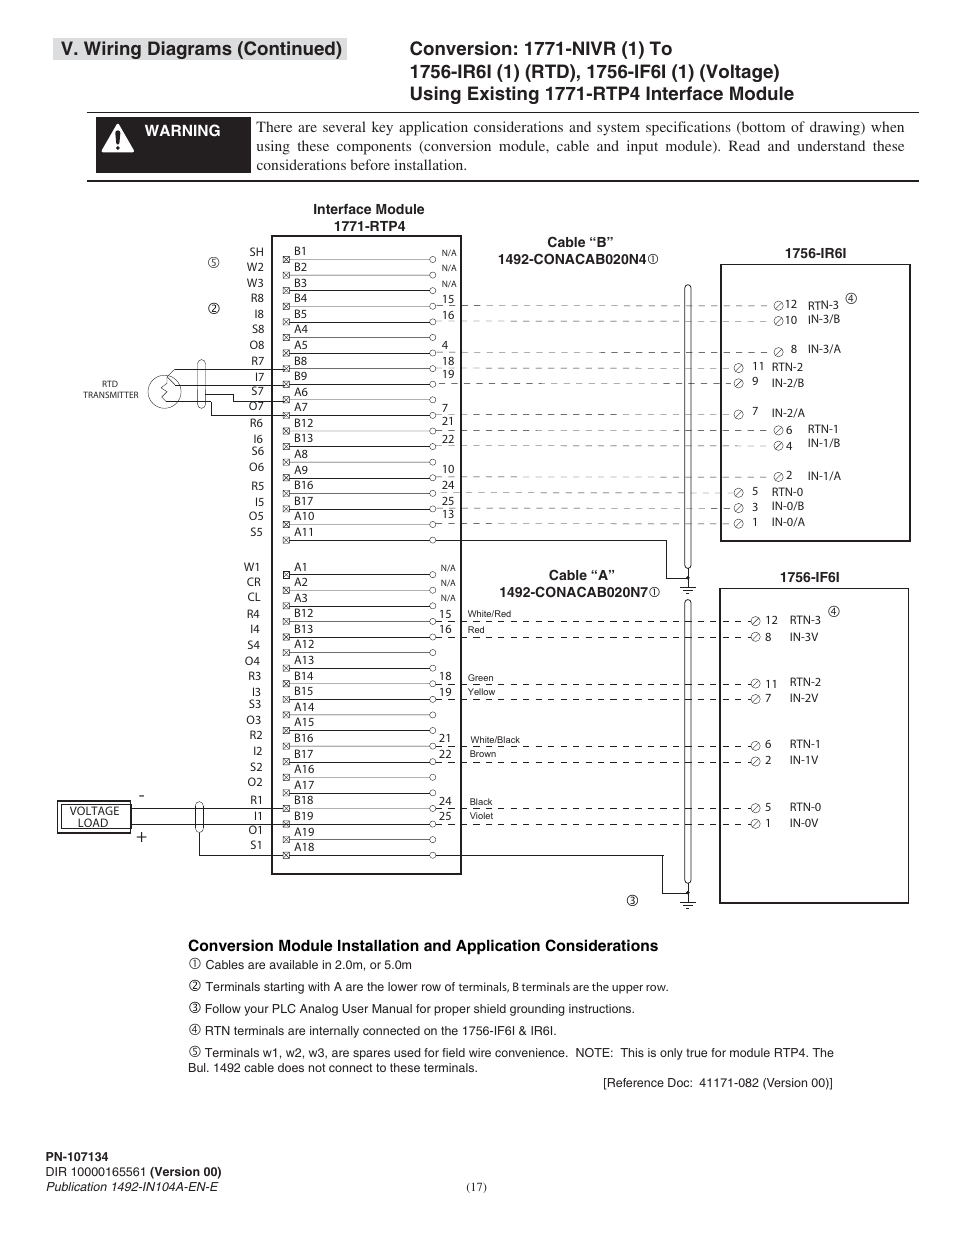 rockwell automation 1492 1771 n series i_o to 1756 controllogix i_o page17?resize\\\=665%2C861 mazda wiring diagram pdf efcaviation com on 2006 pt cruiser wiring 2006 pt cruiser wiring diagram pdf at bayanpartner.co